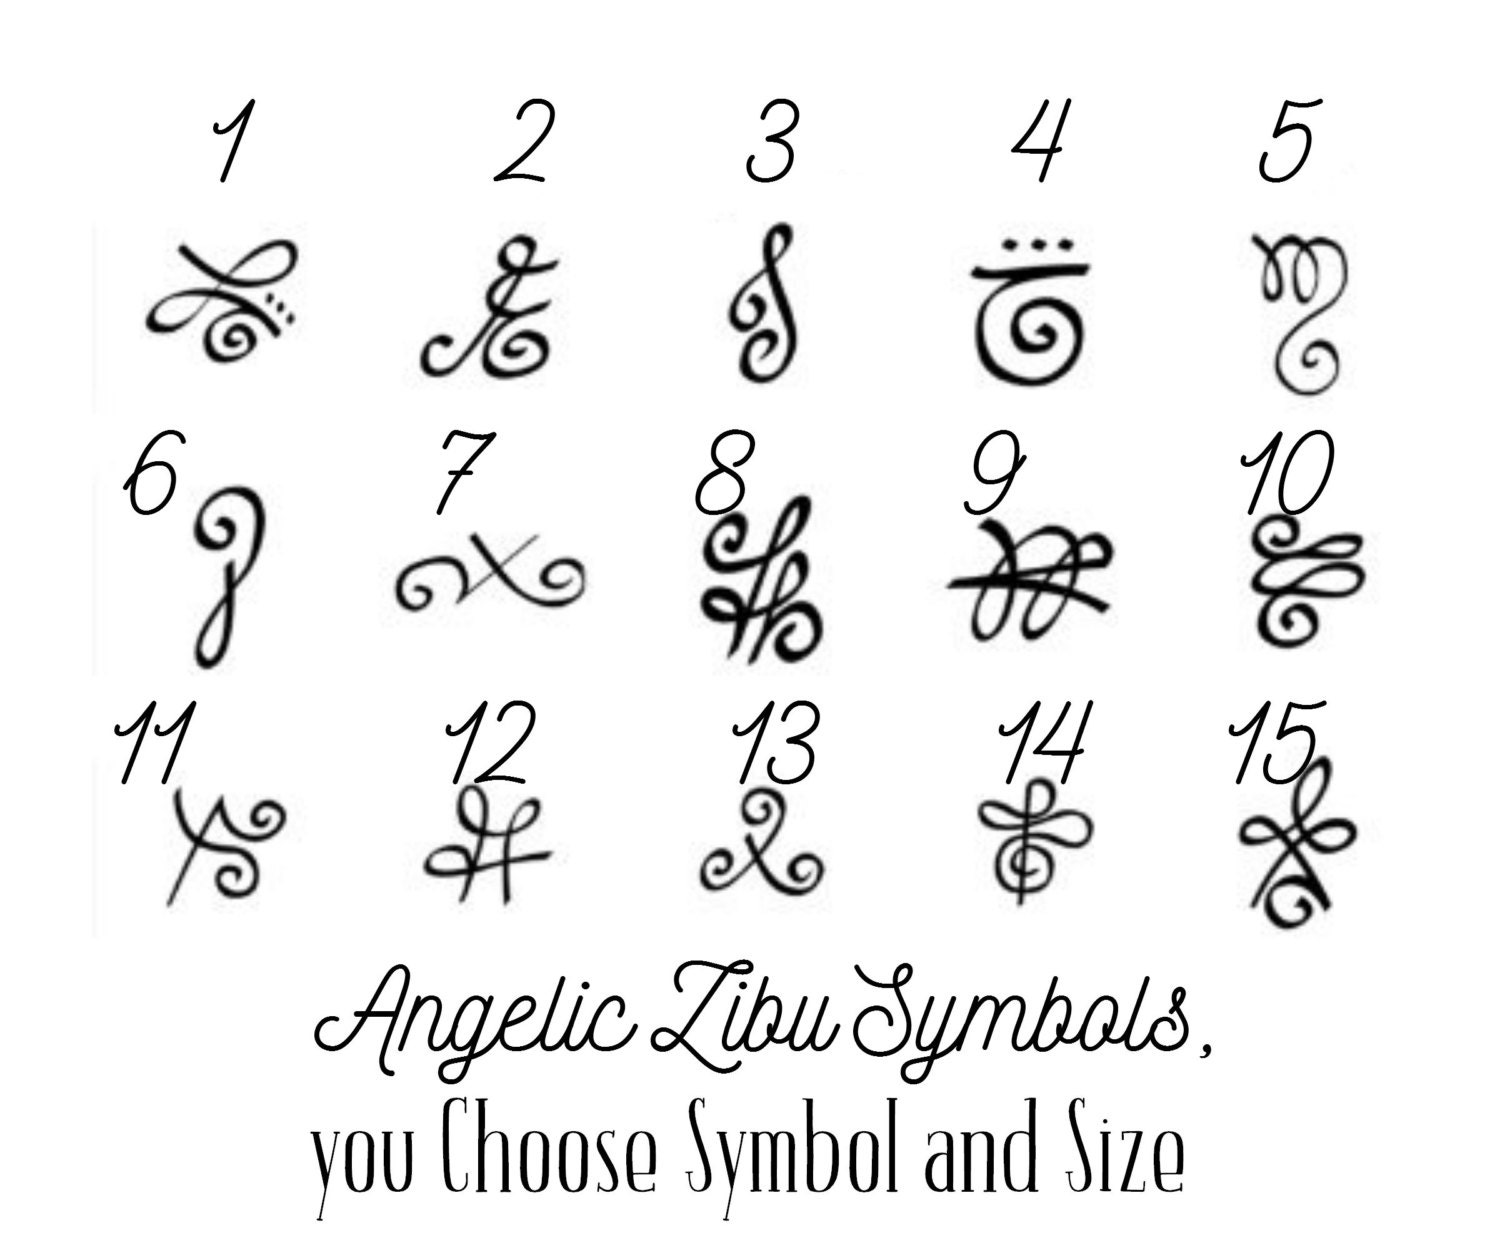 Angel symbols tattoos images for tatouage angel symbols tattoos with angelic protection symbol tattoos pictures to pin on pinterest buycottarizona Images